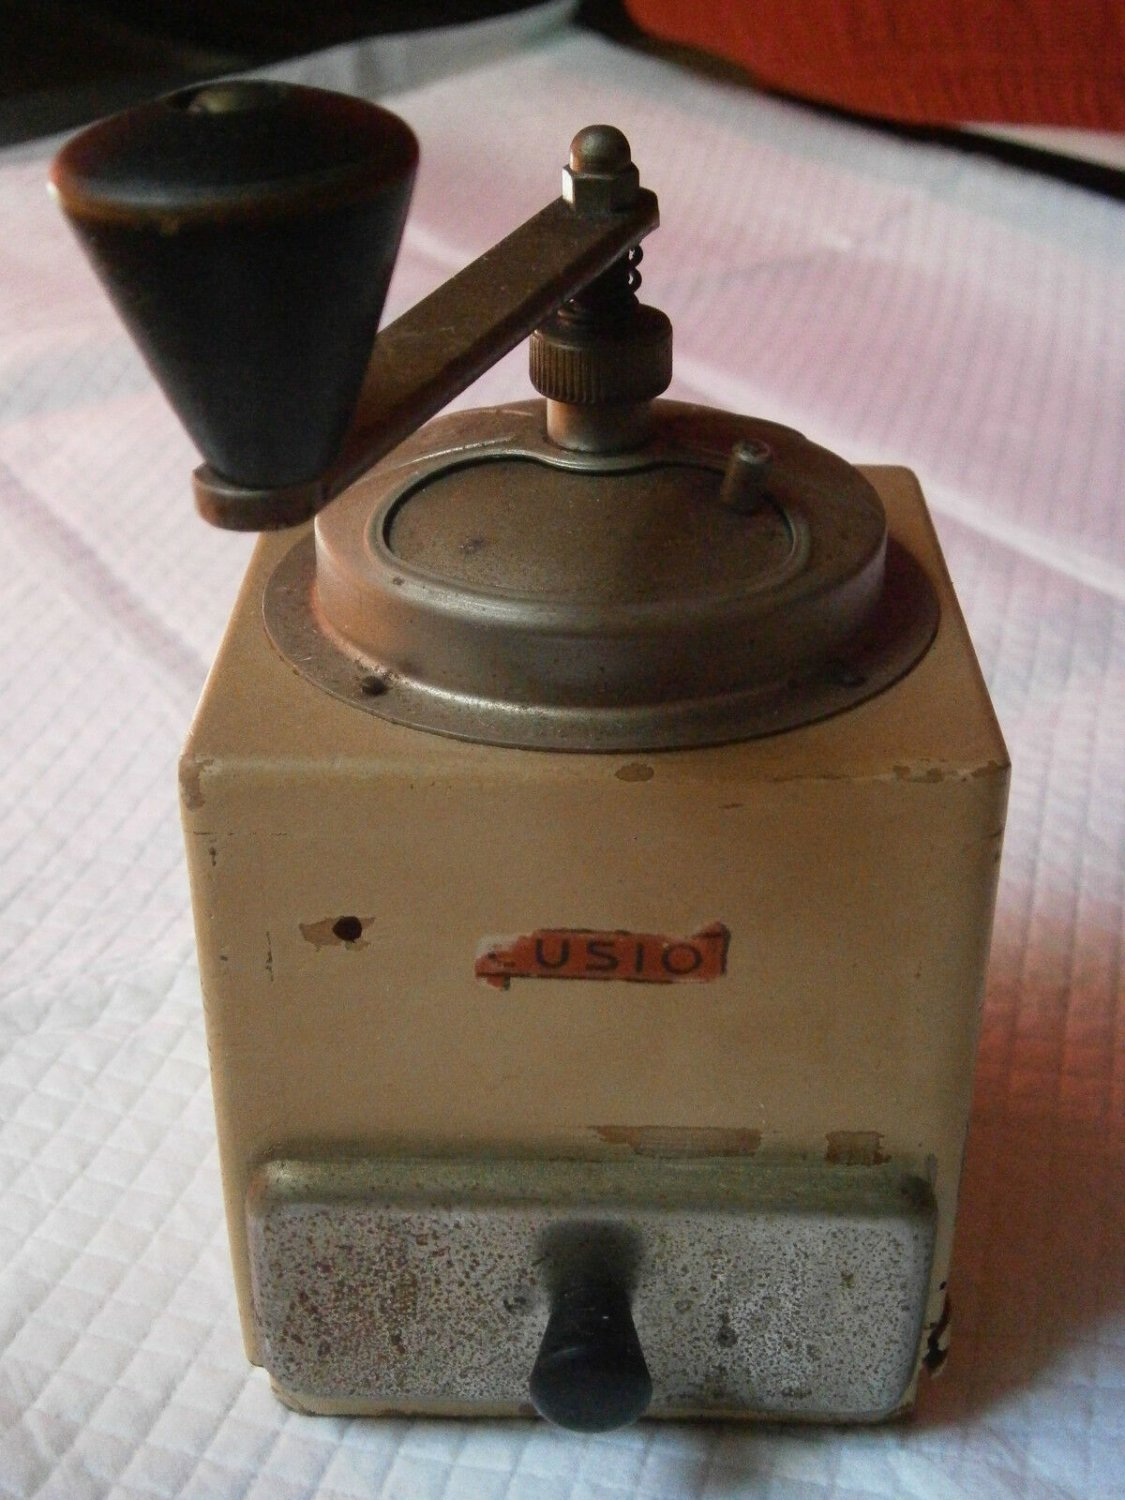 CUSIO COFFEE GRINDER in wood and metal Original from 1950s Working